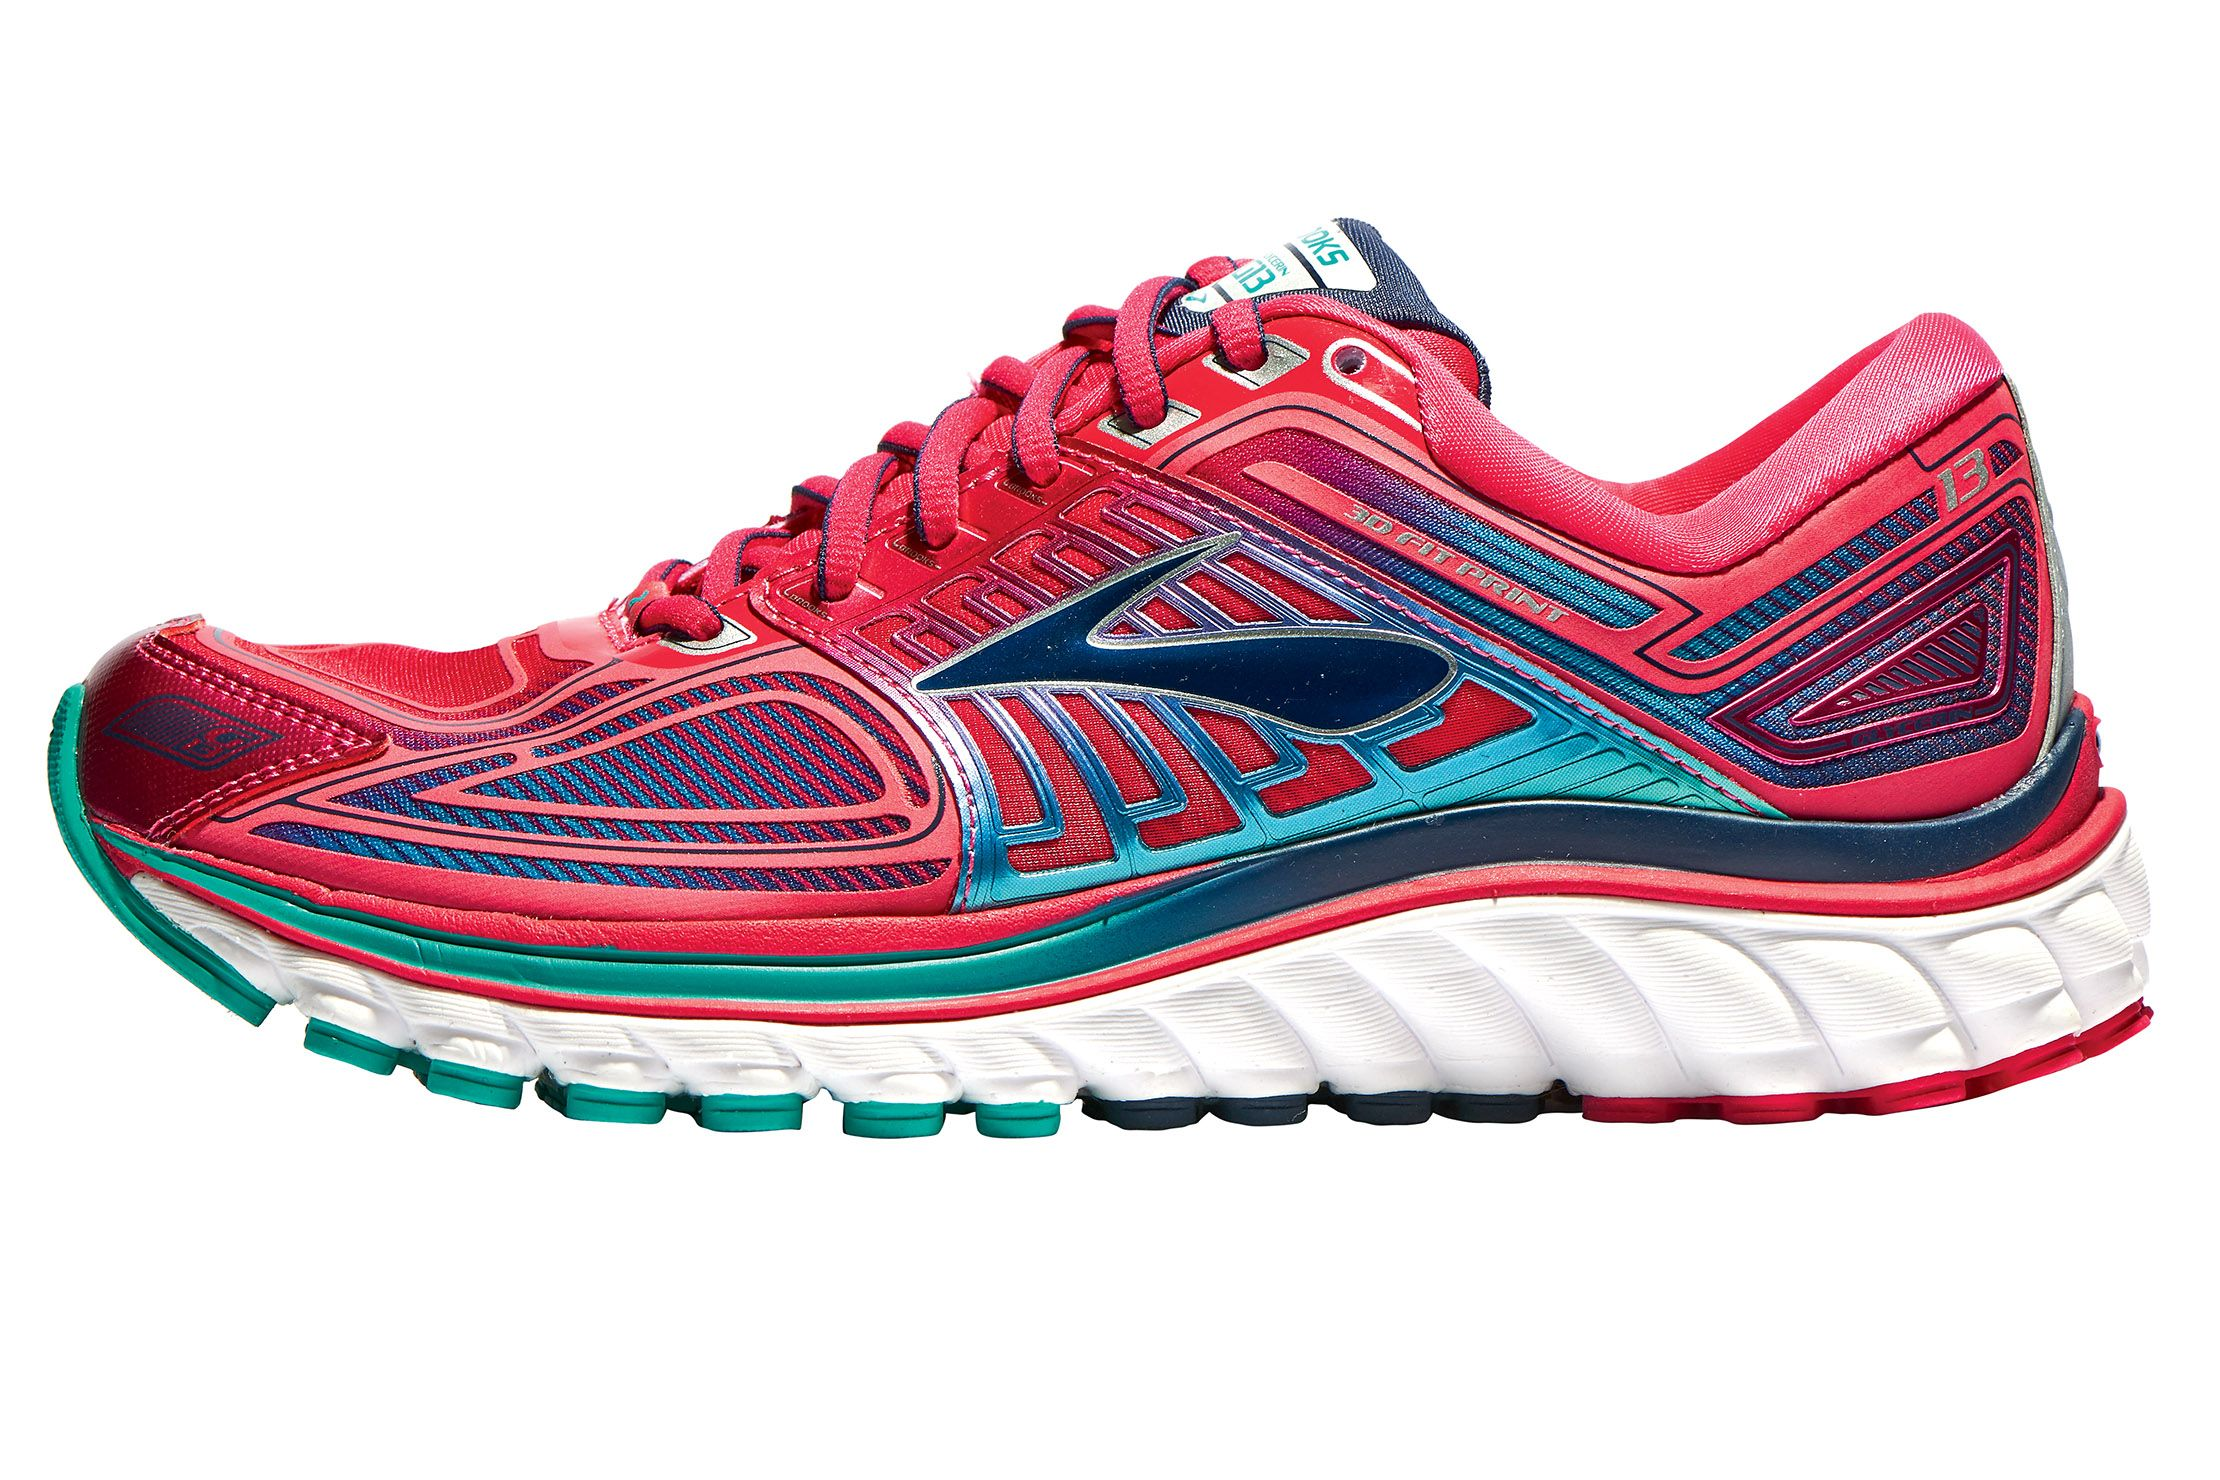 b53bbcb48e0 The Best Running Shoes of 2015